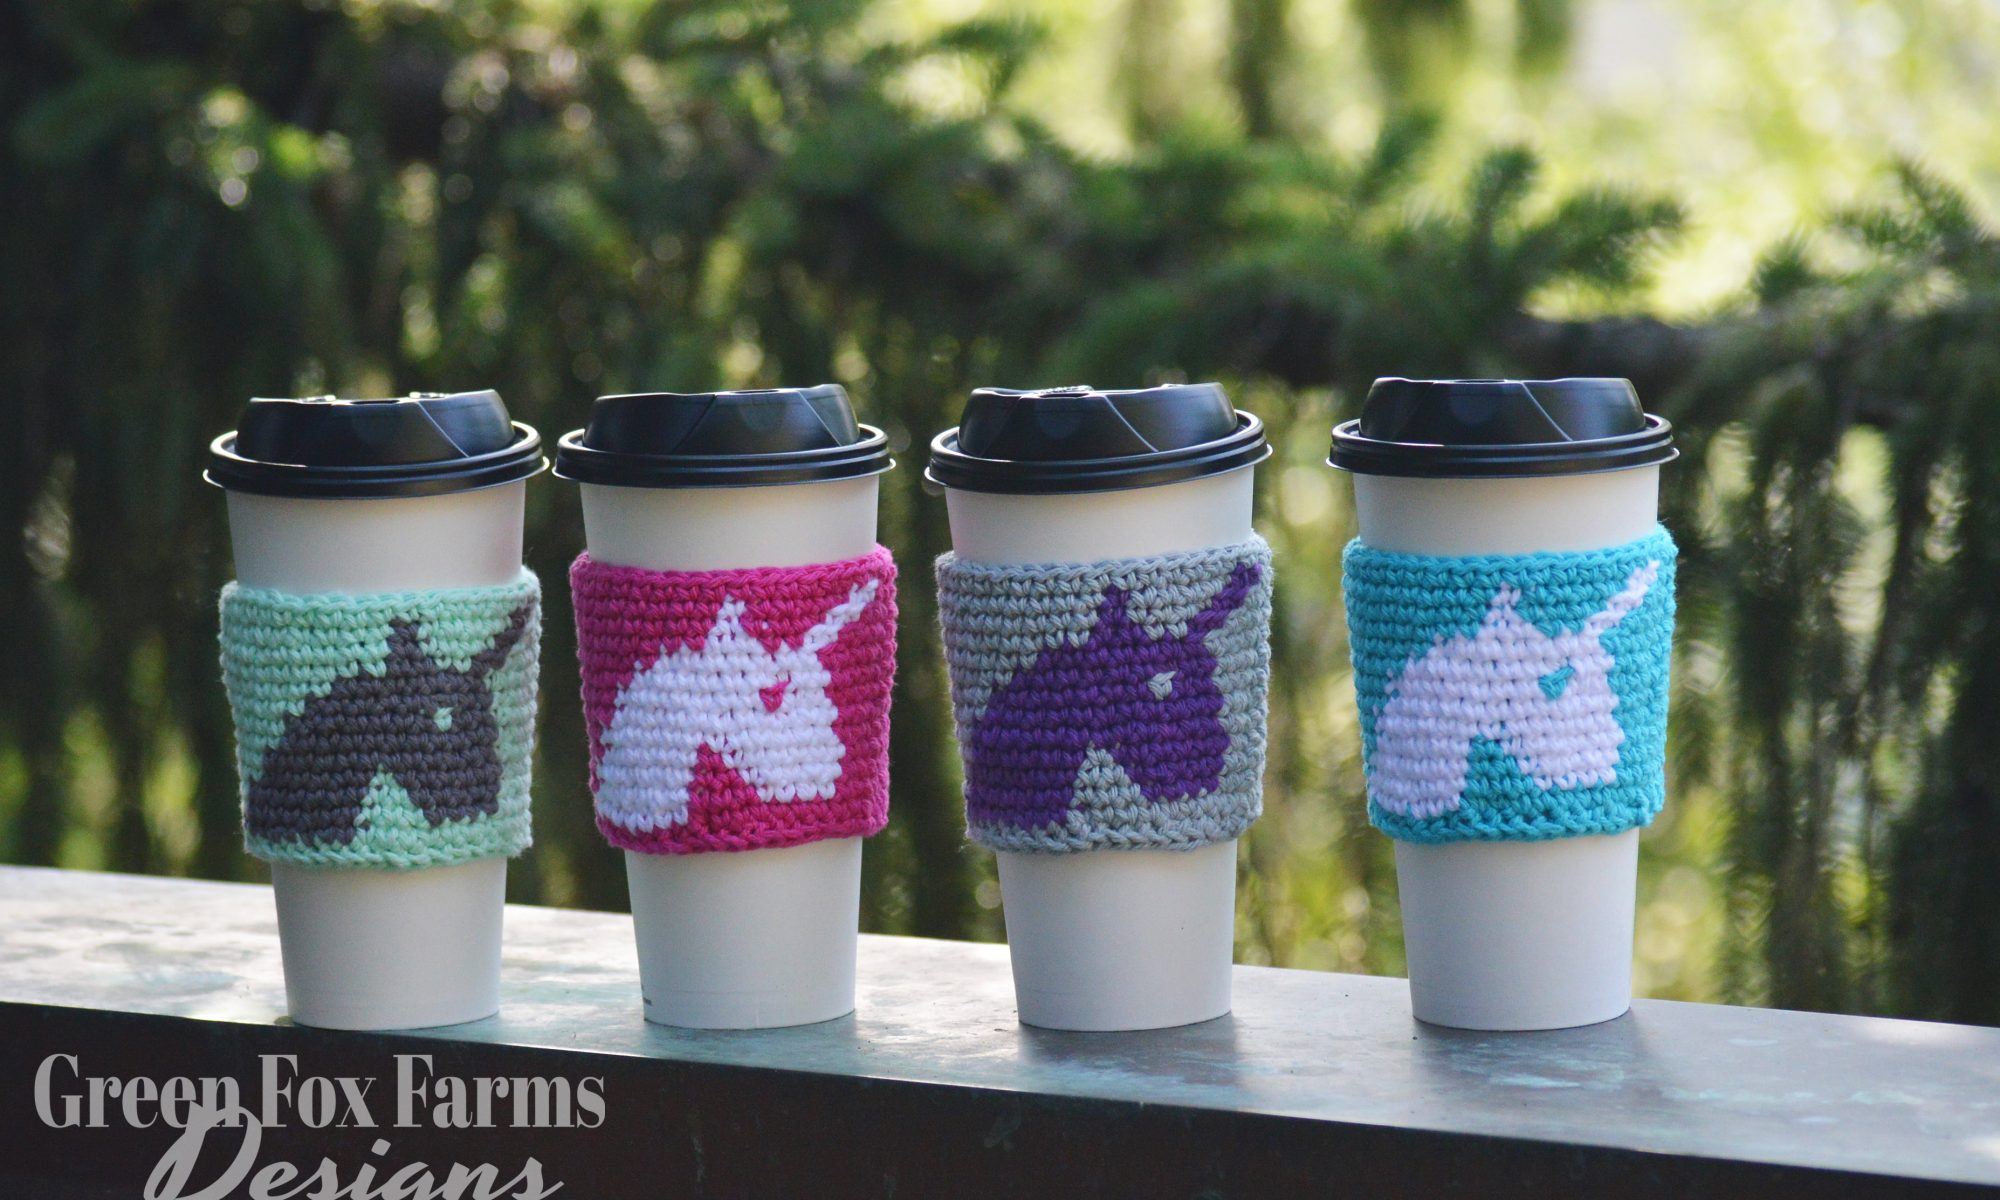 4 cups with unicorn coffee cozy